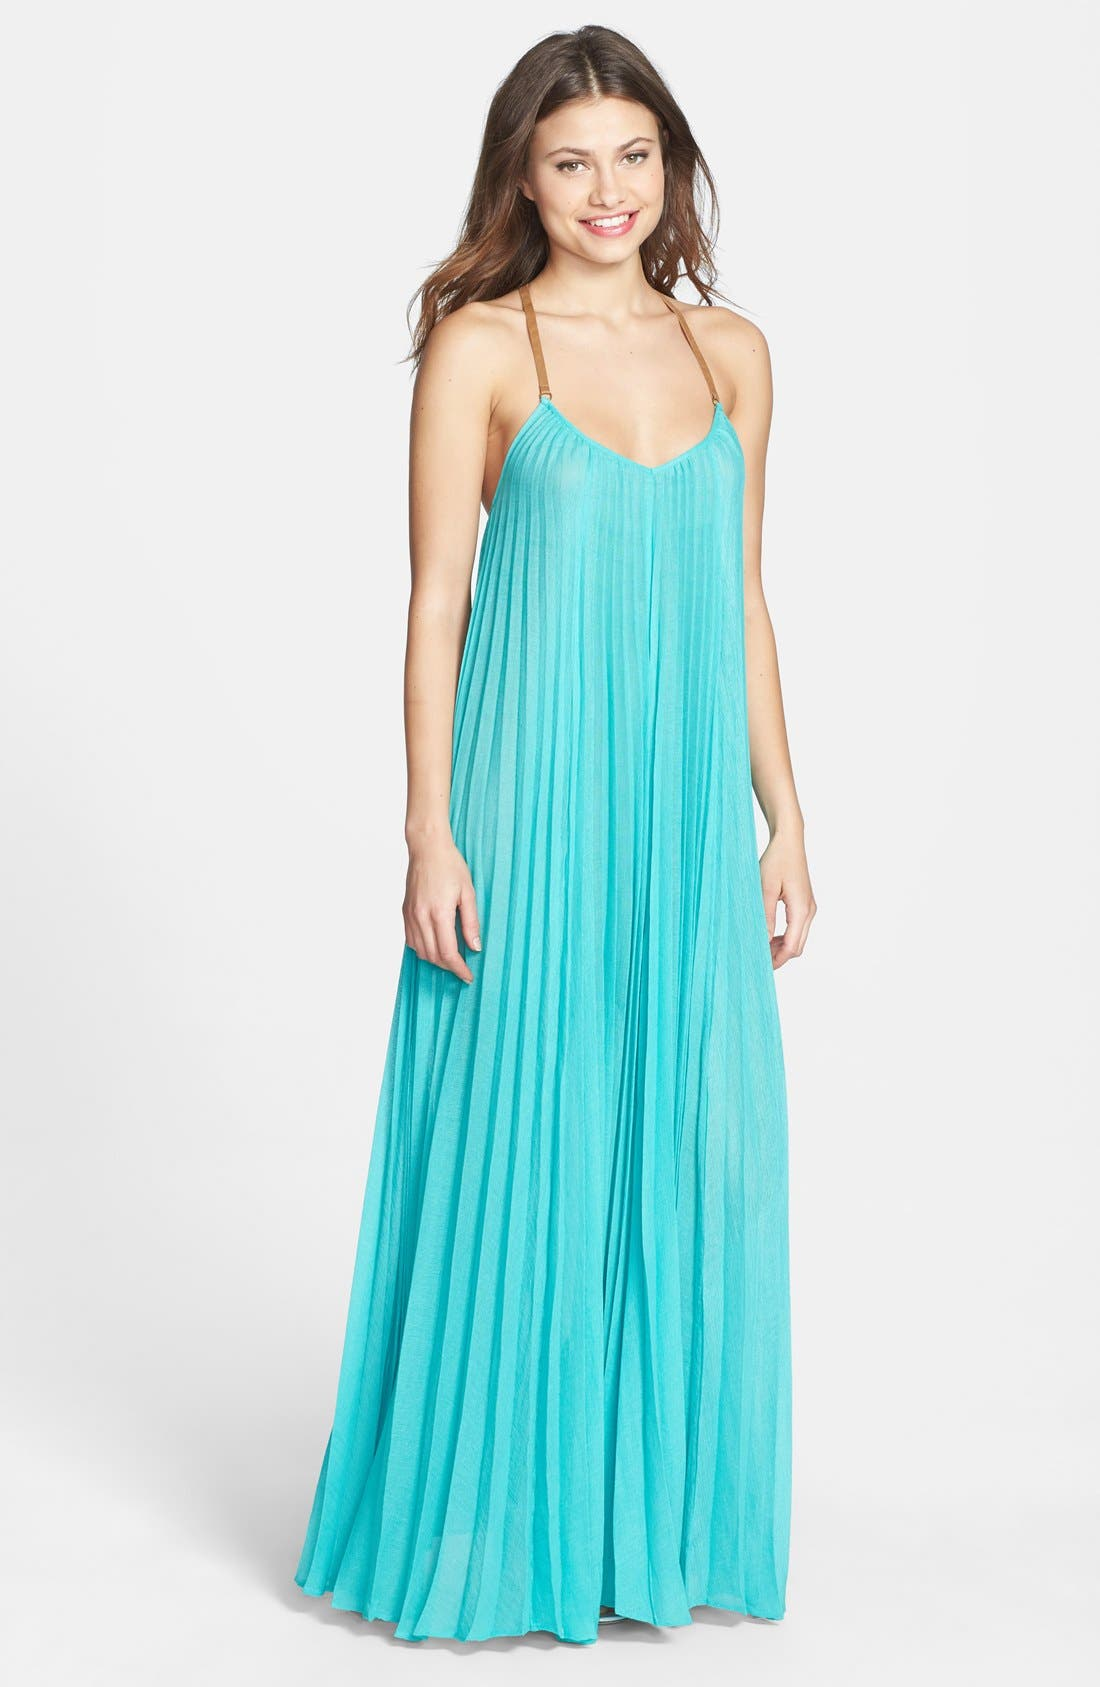 Main Image - BCBGMAXAZRIA 'Brynna' T-Strap Back Maxi Dress